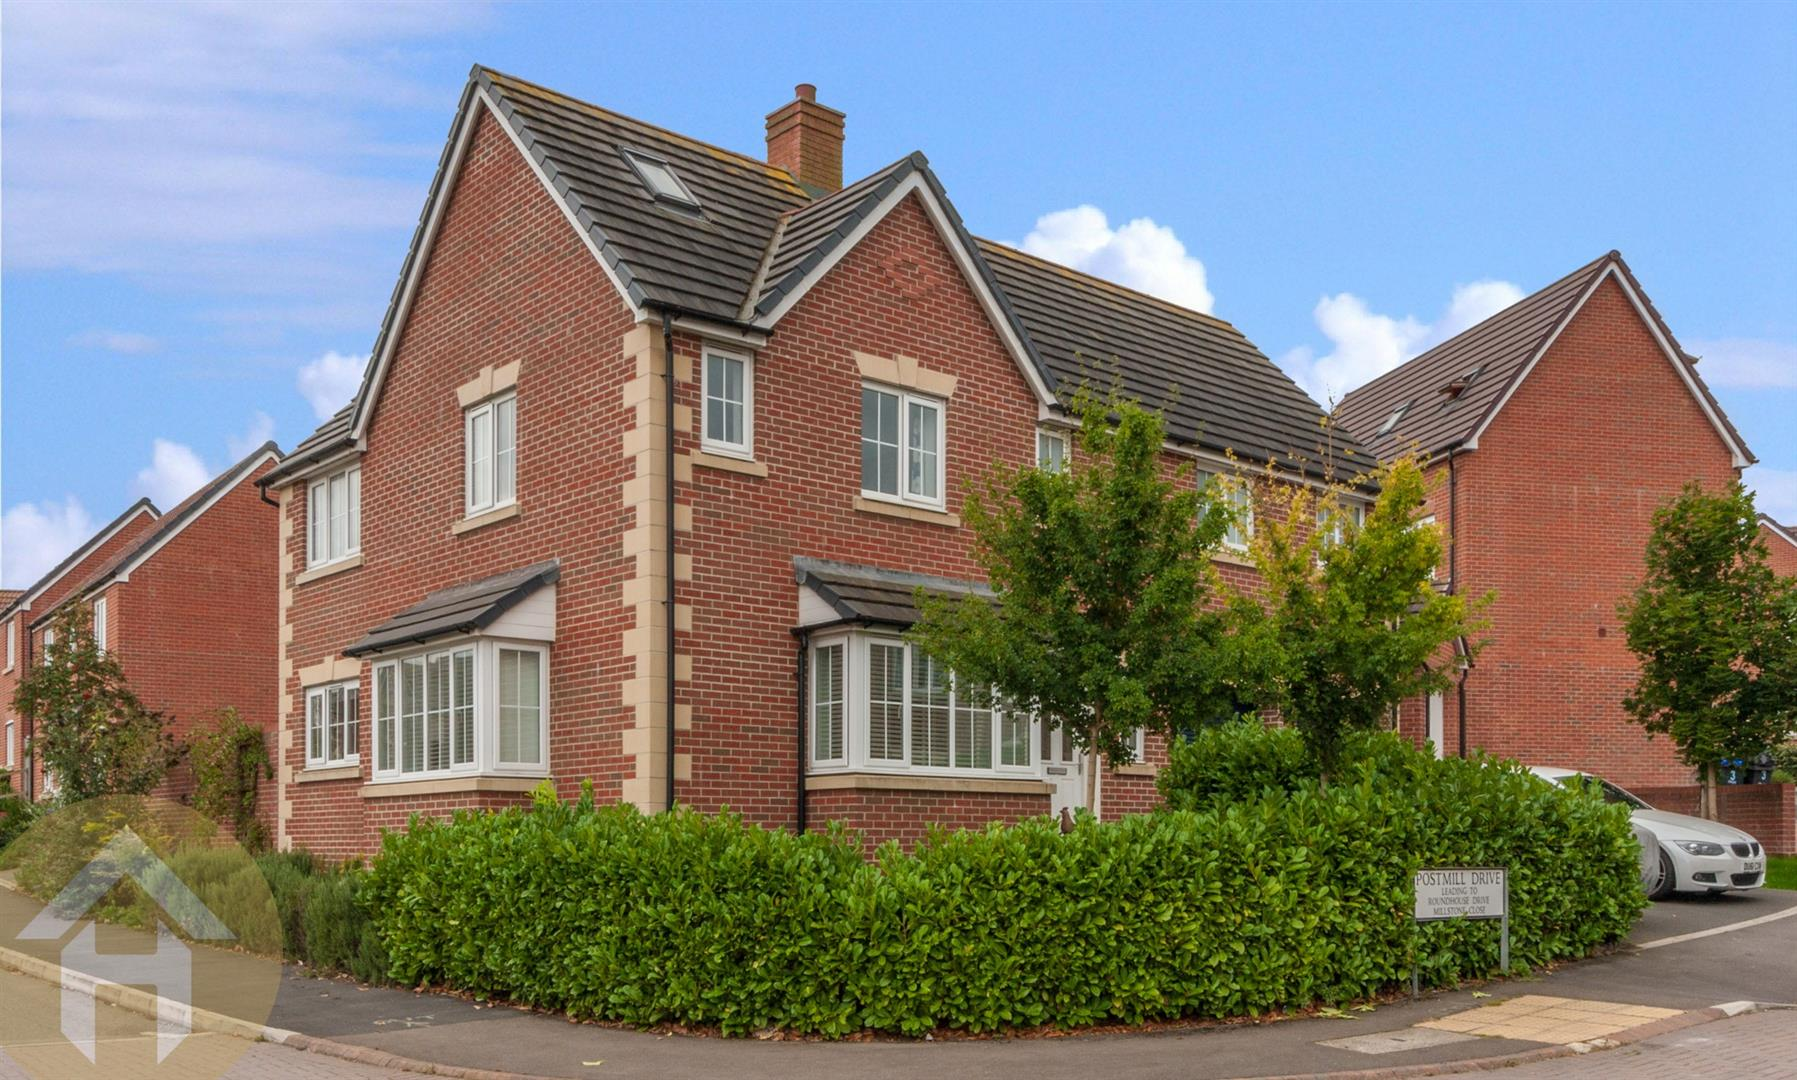 5 Bedrooms Detached House for sale in Postmill Drive, Royal Wootton Bassett